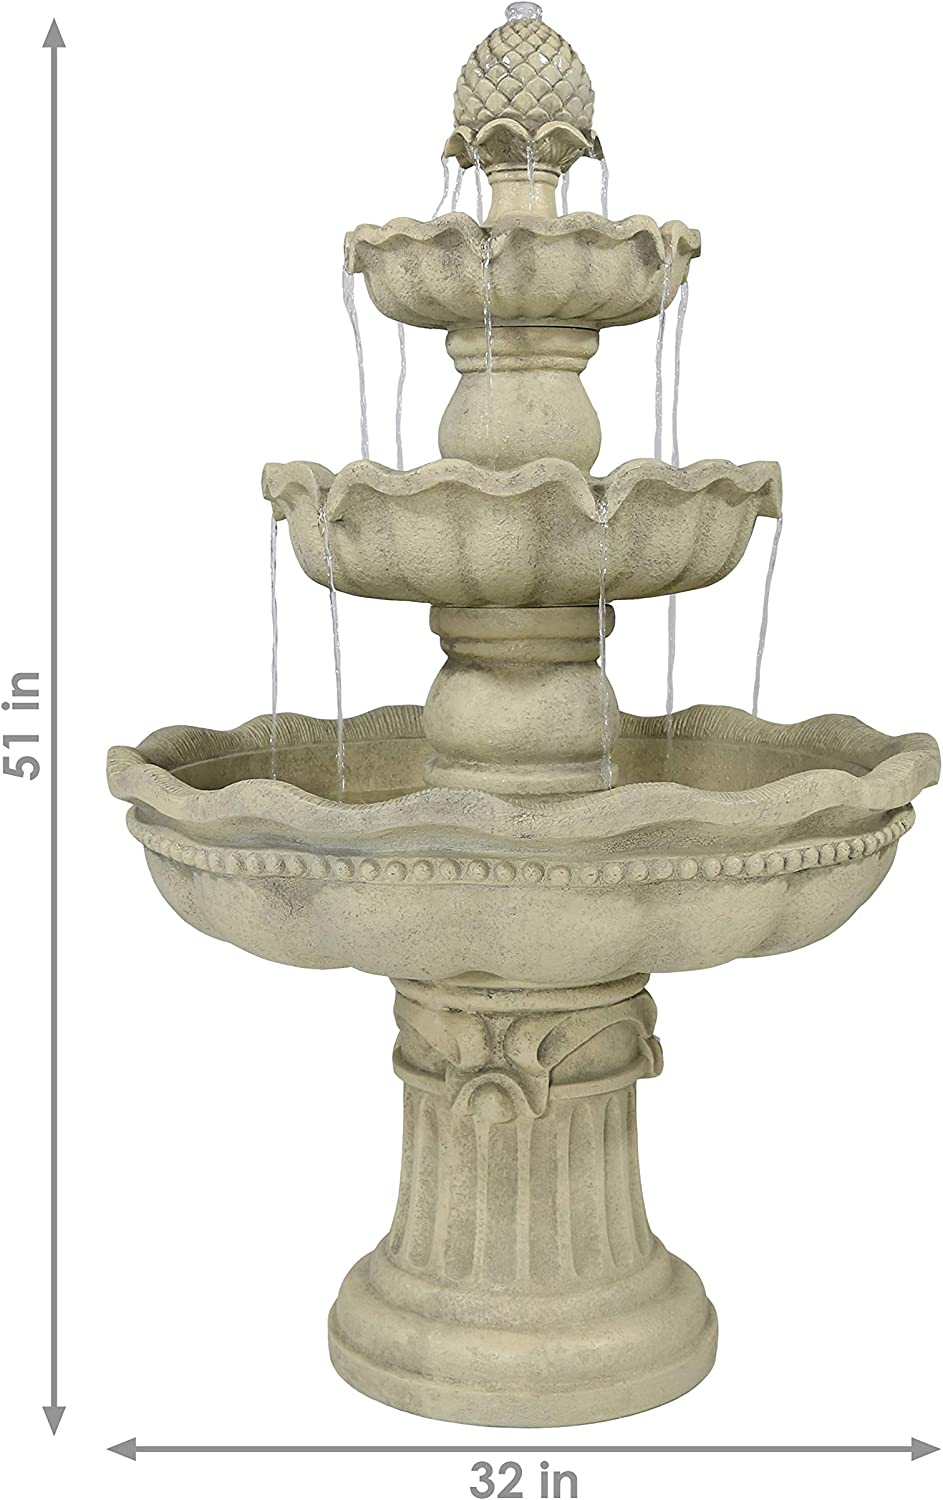 Amazon Com Sunnydaze 3 Tier Outdoor Water Fountain With Pineapple Top Large Outside Floor Waterfall Fountain Feature For Garden Backyard Patio Porch Or Yard White 51 Inch Sunnydaze Decor Kitchen Dining